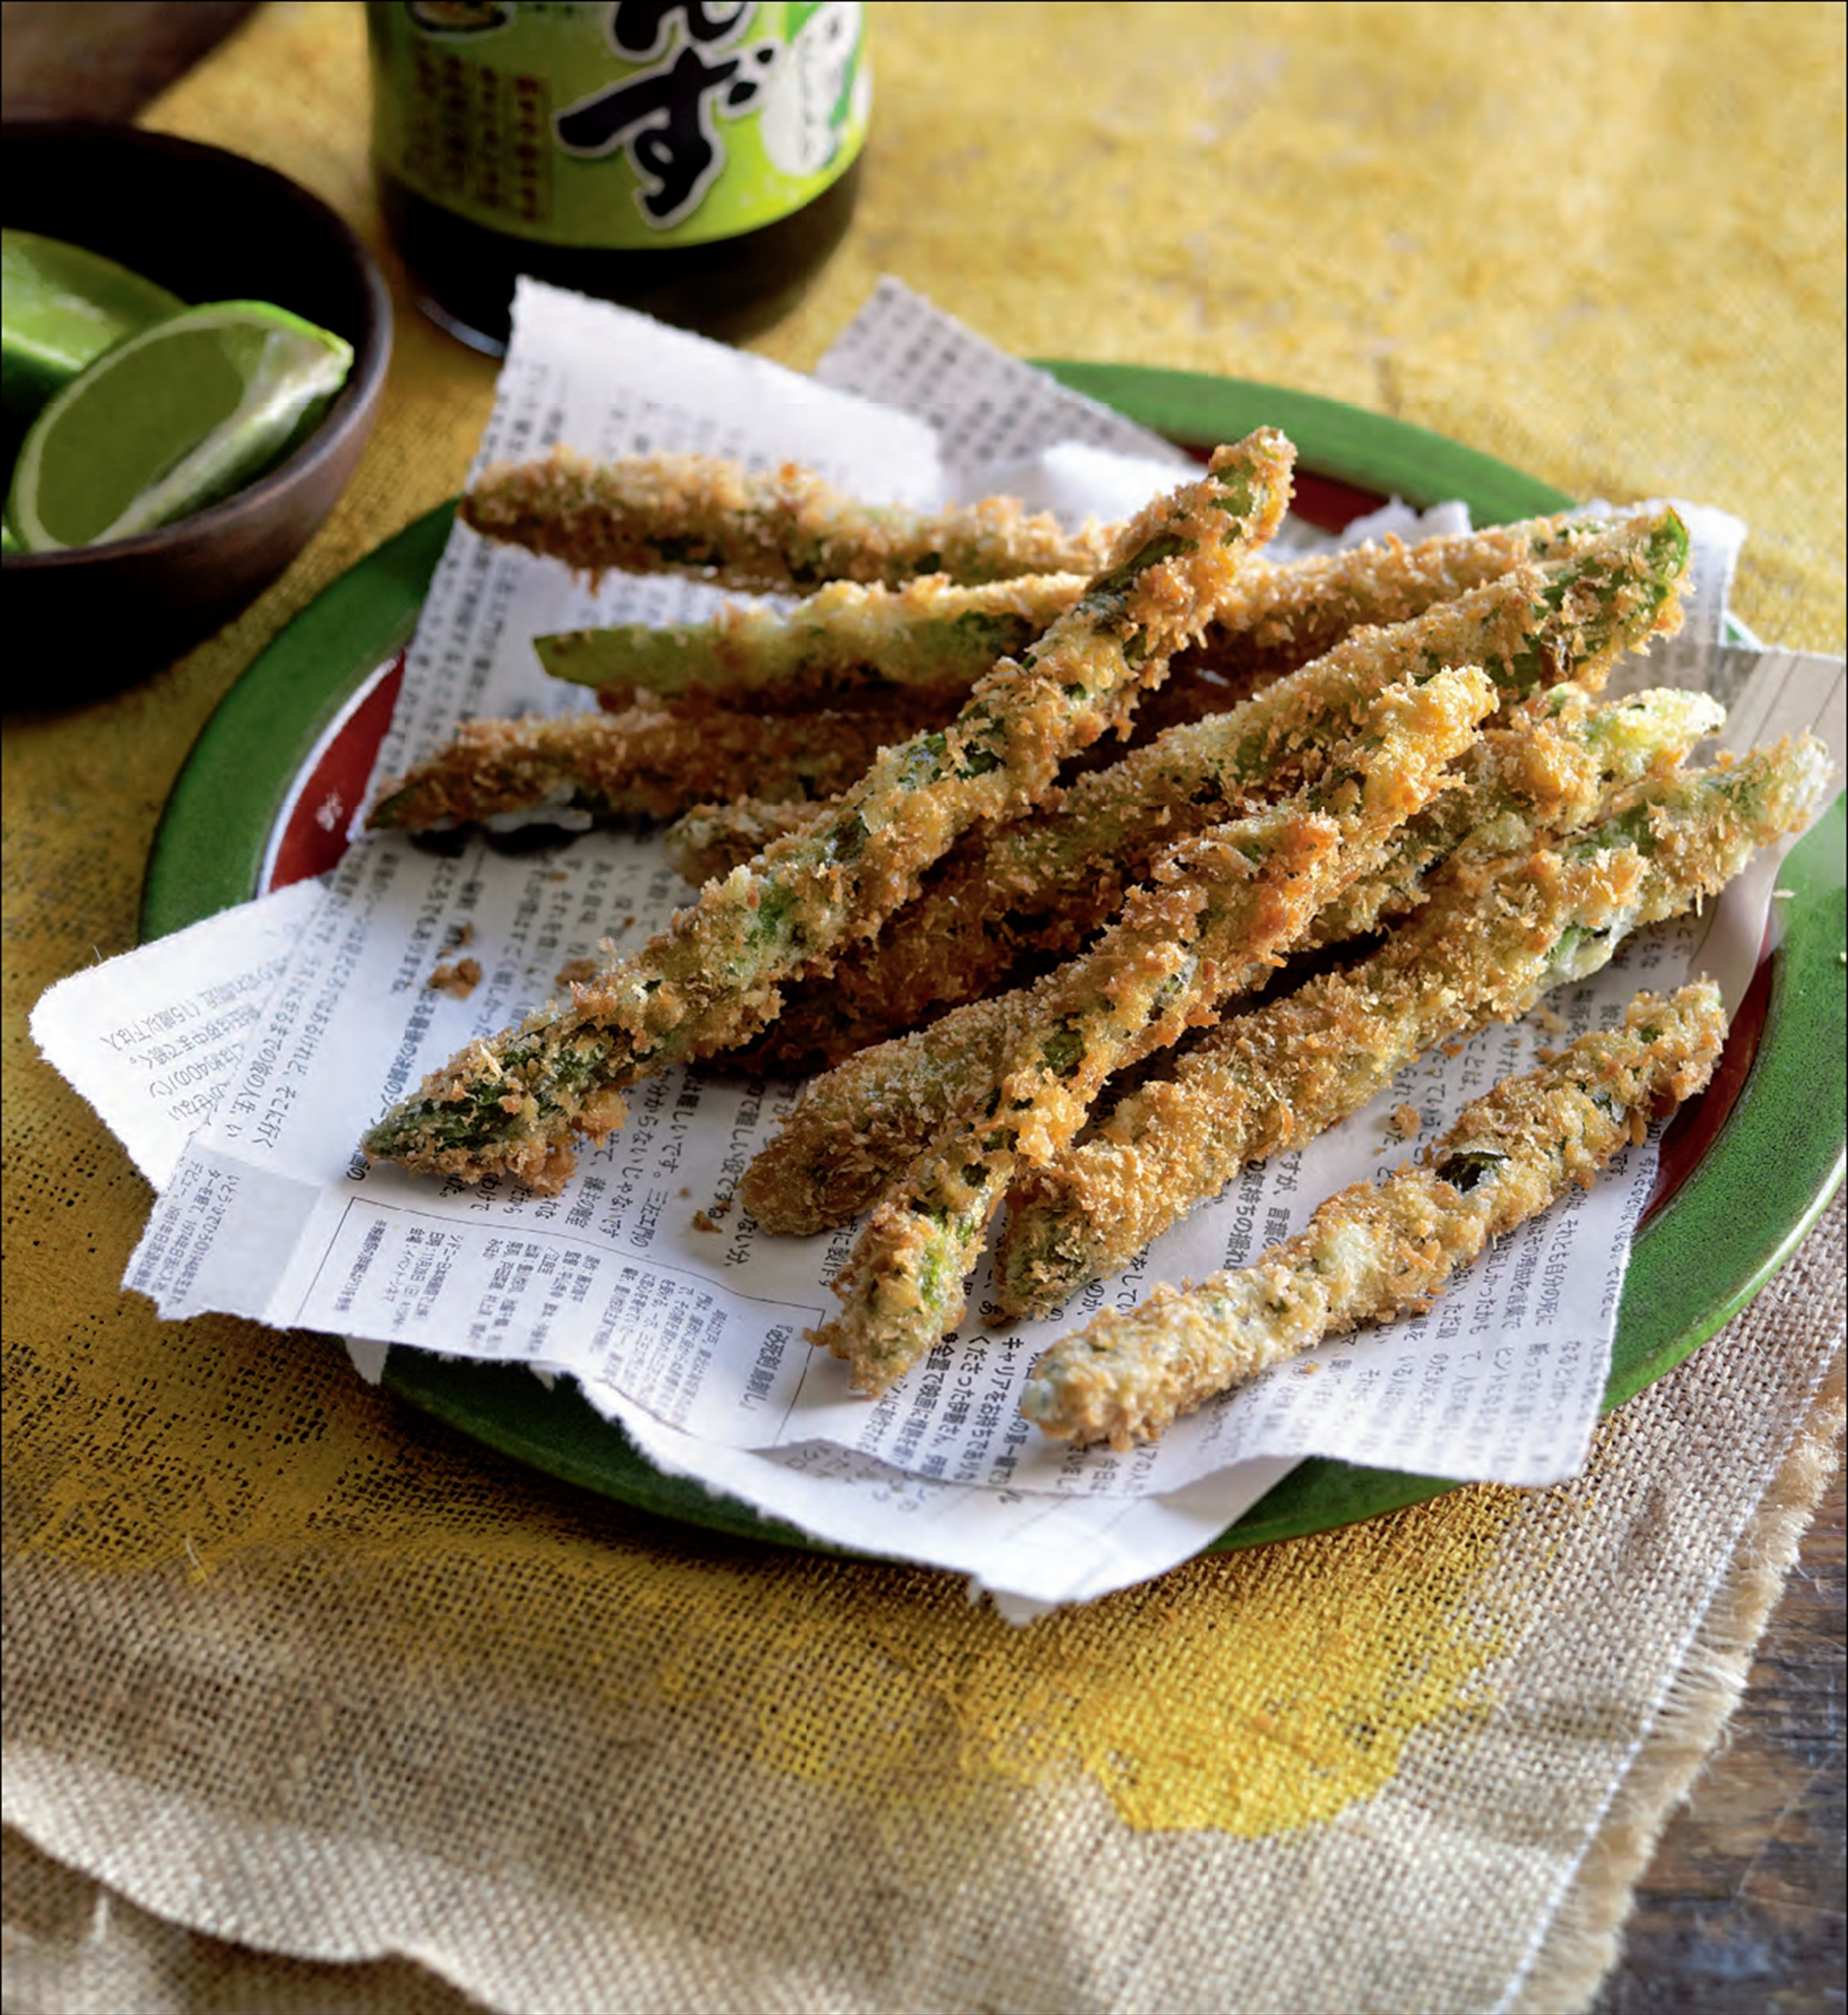 Crumbed asparagus